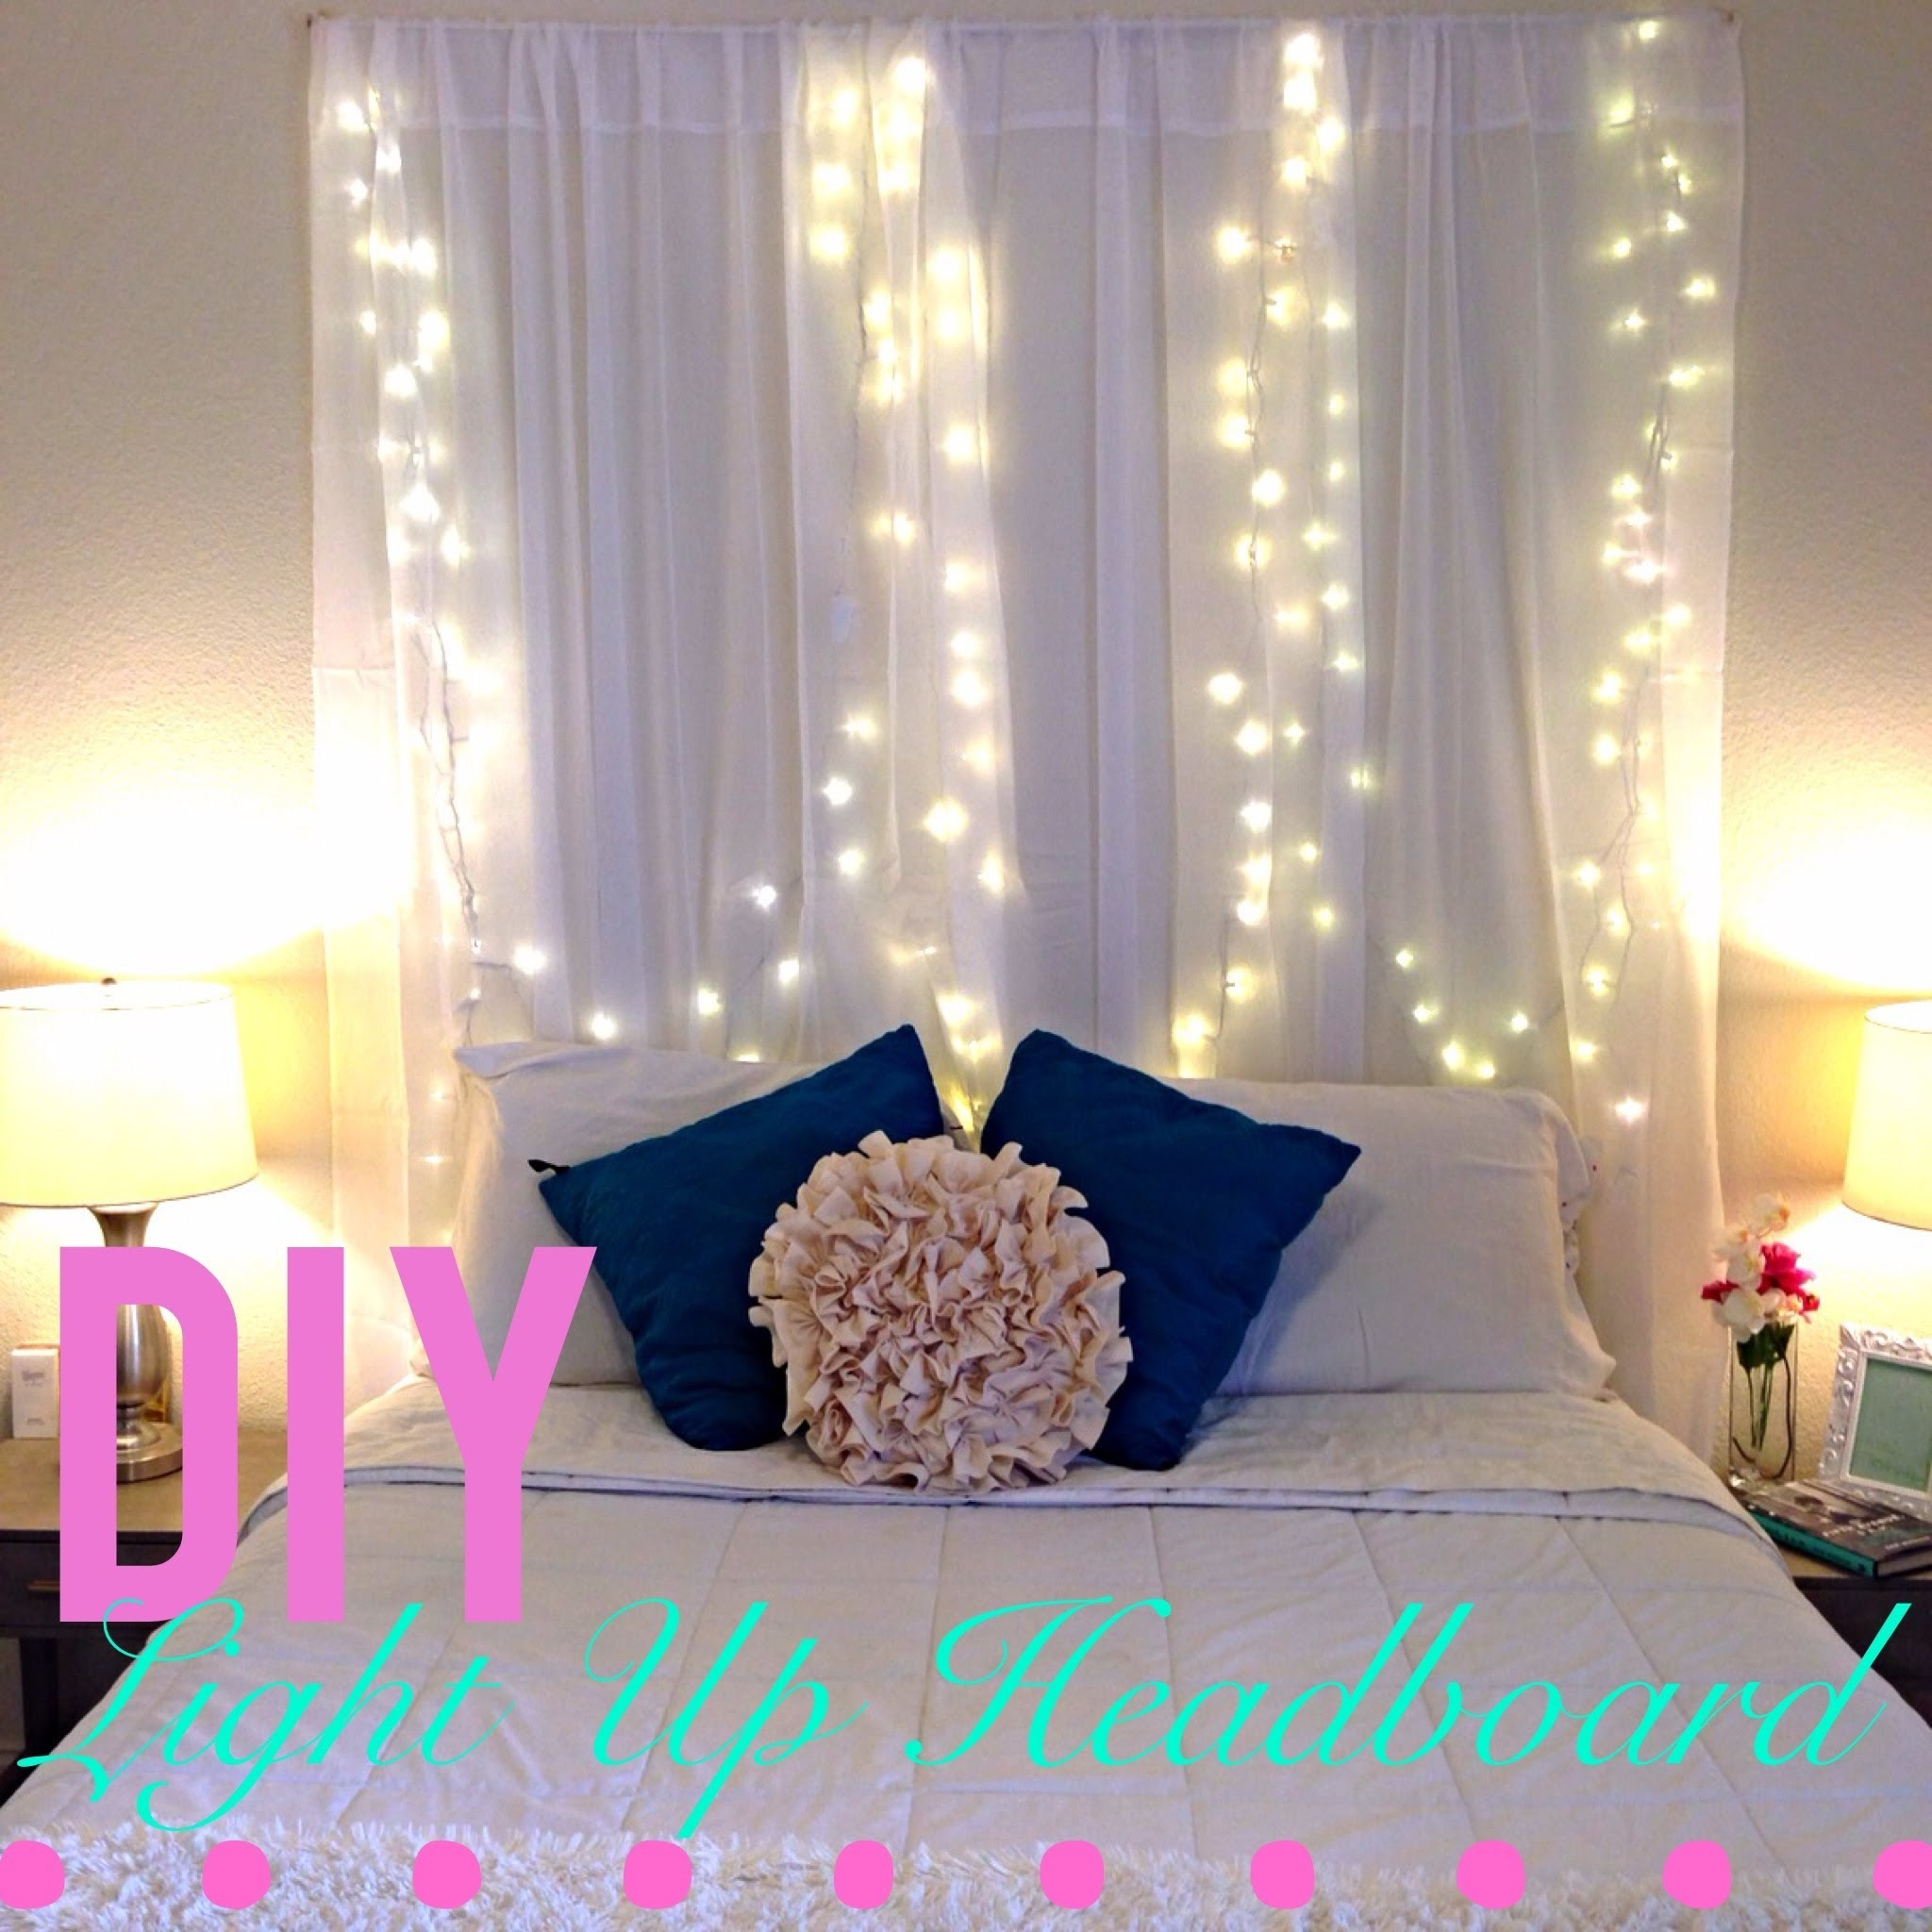 Led curtain headboard